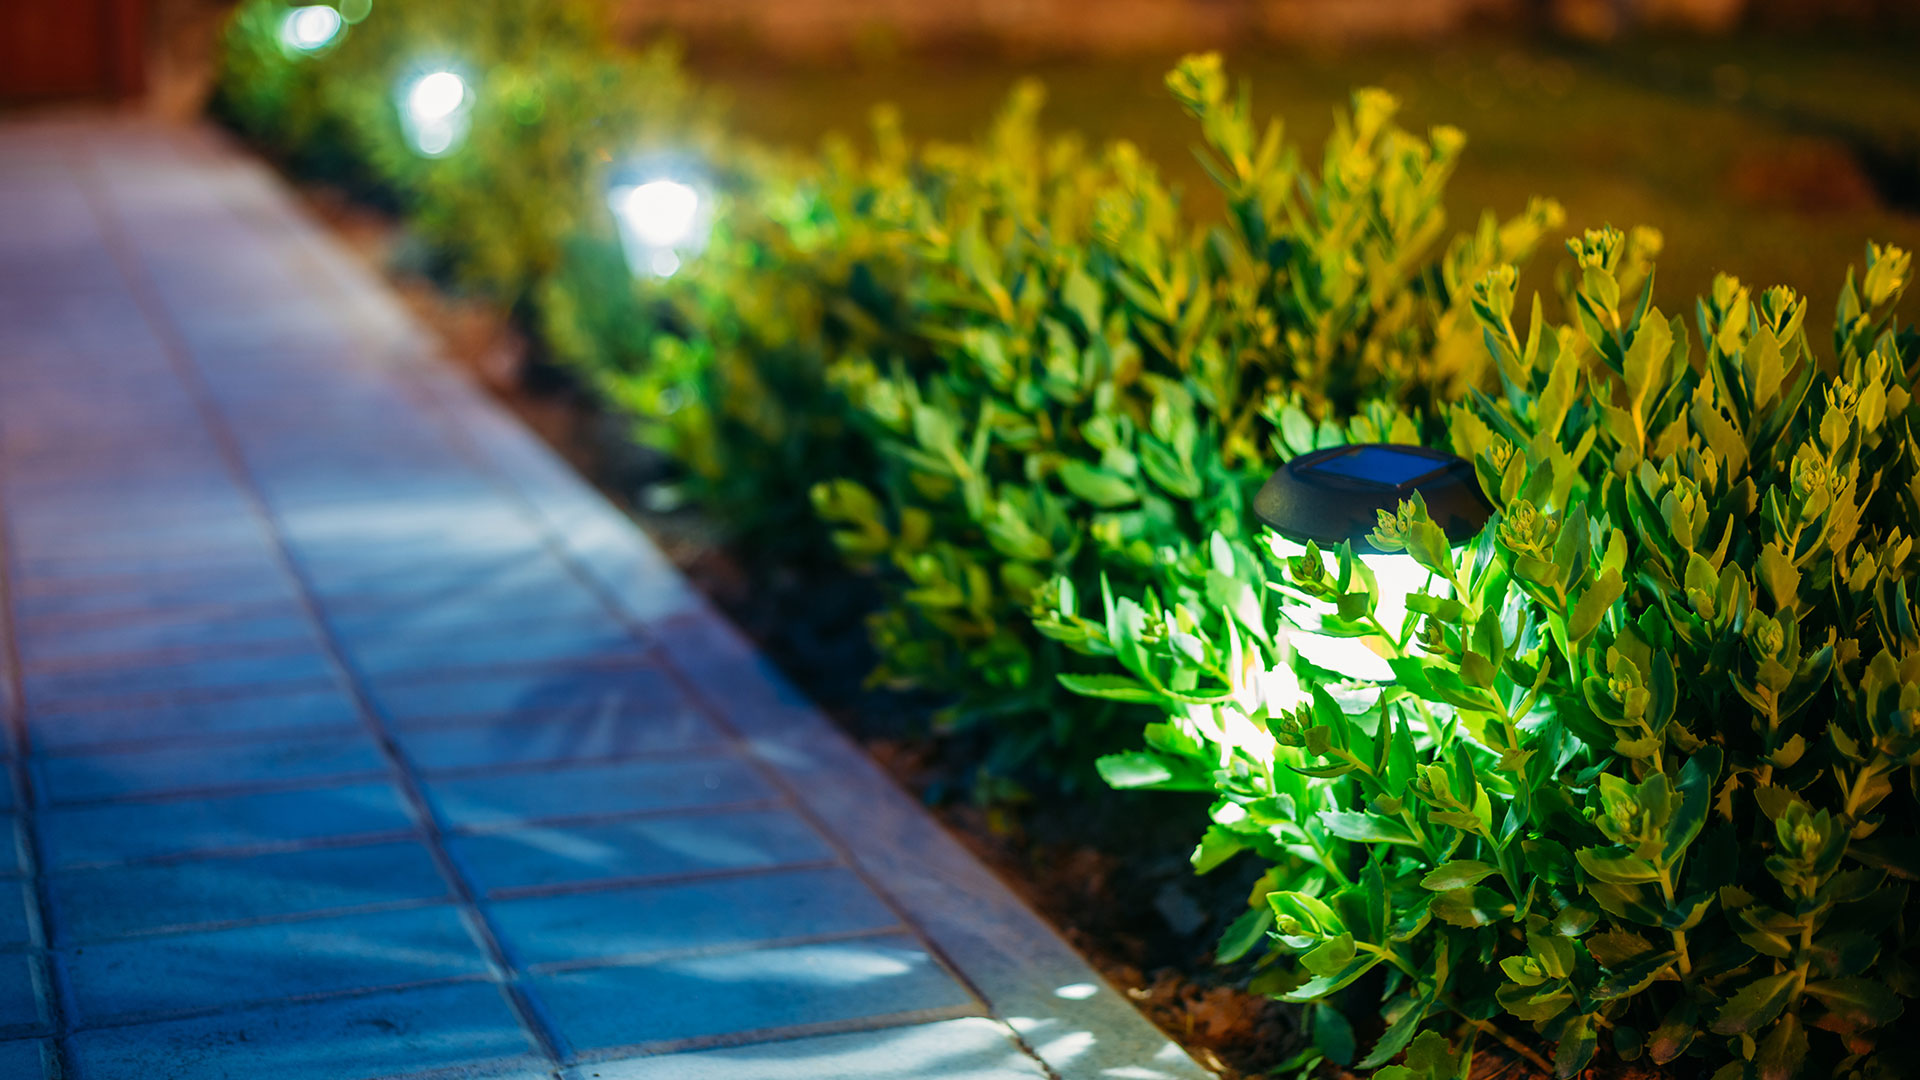 Use outdoor lighting to illuminate walkways and spotlight landscape plants.